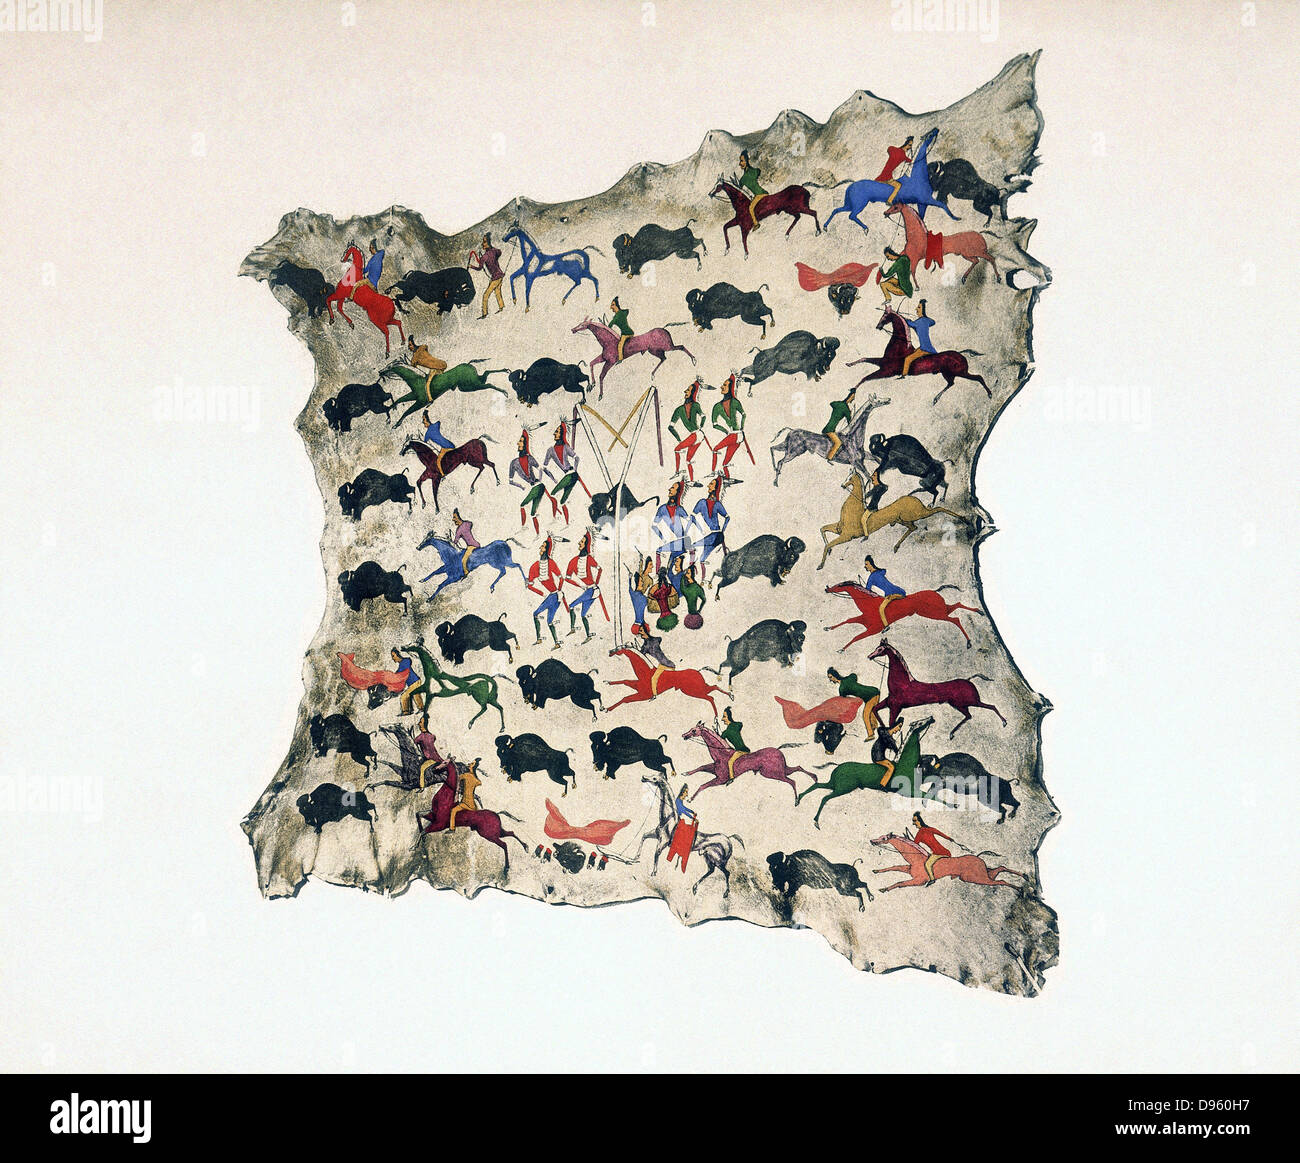 North American  Indian painting, early 20th century. Painting on moose skin by Shoshone, Katsikodi, showing Buffalo - Stock Image